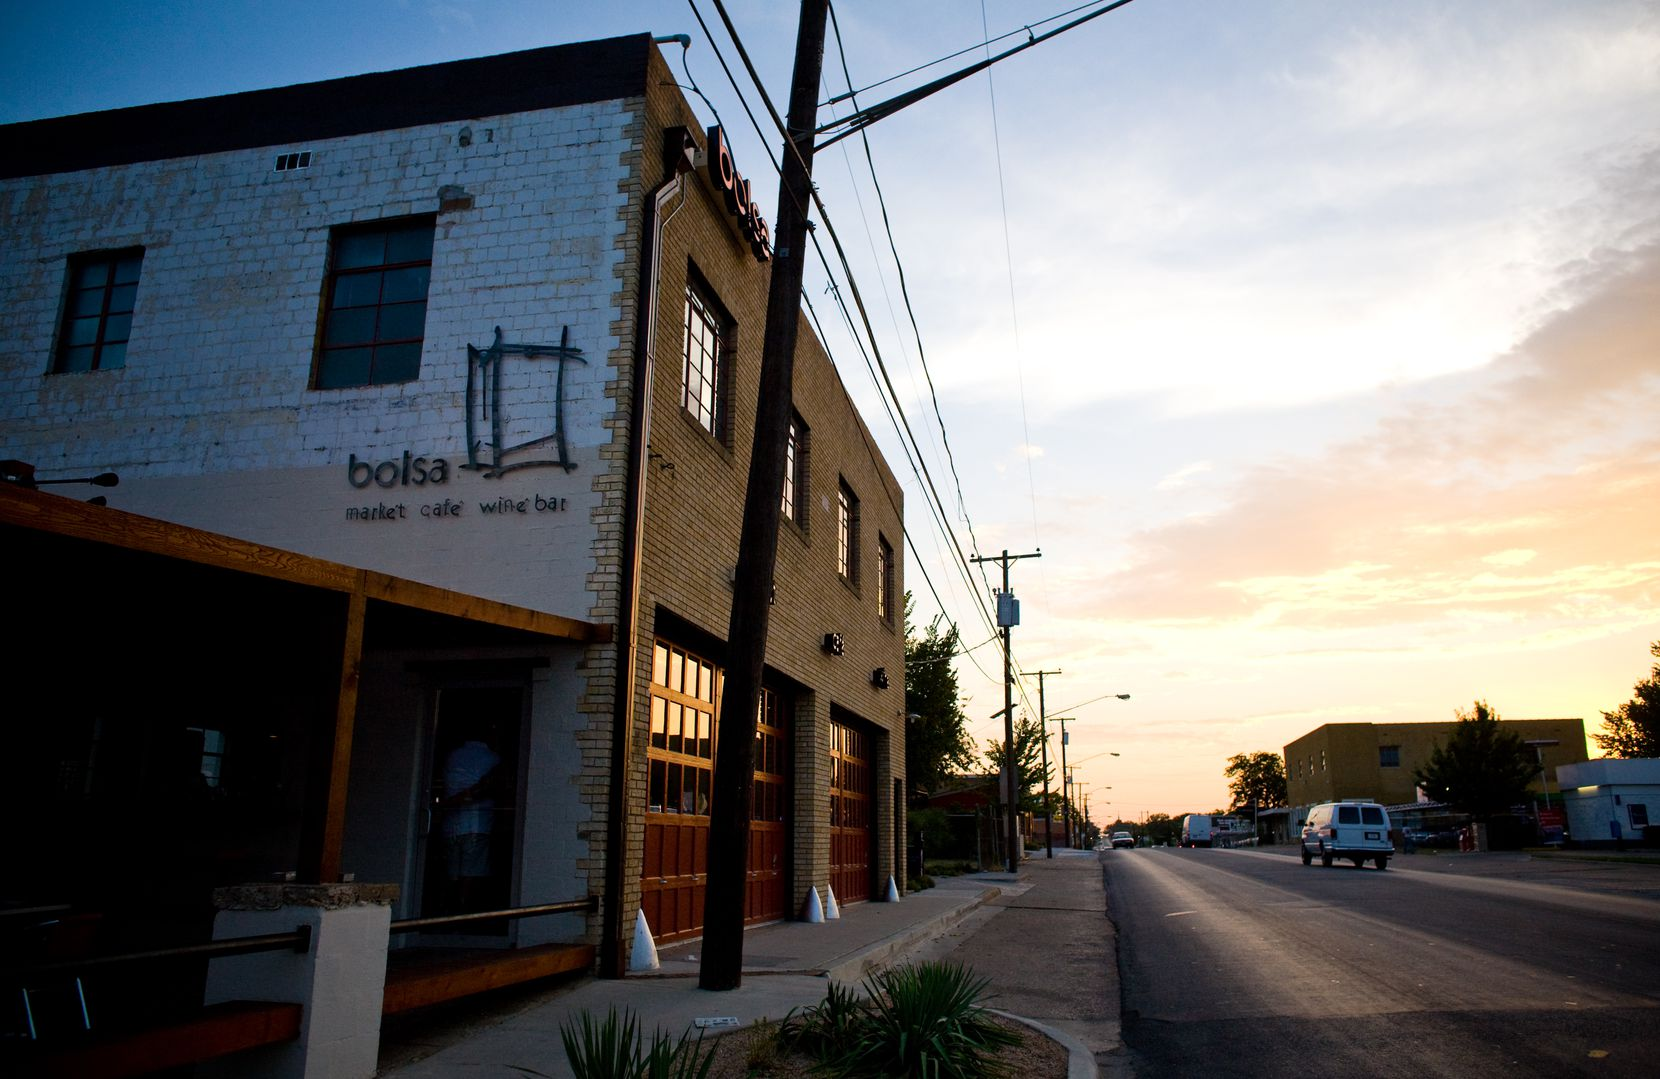 Bolsa wasn't exactly in the Bishop Arts District; it was located on W. Davis Street a few more blocks west.